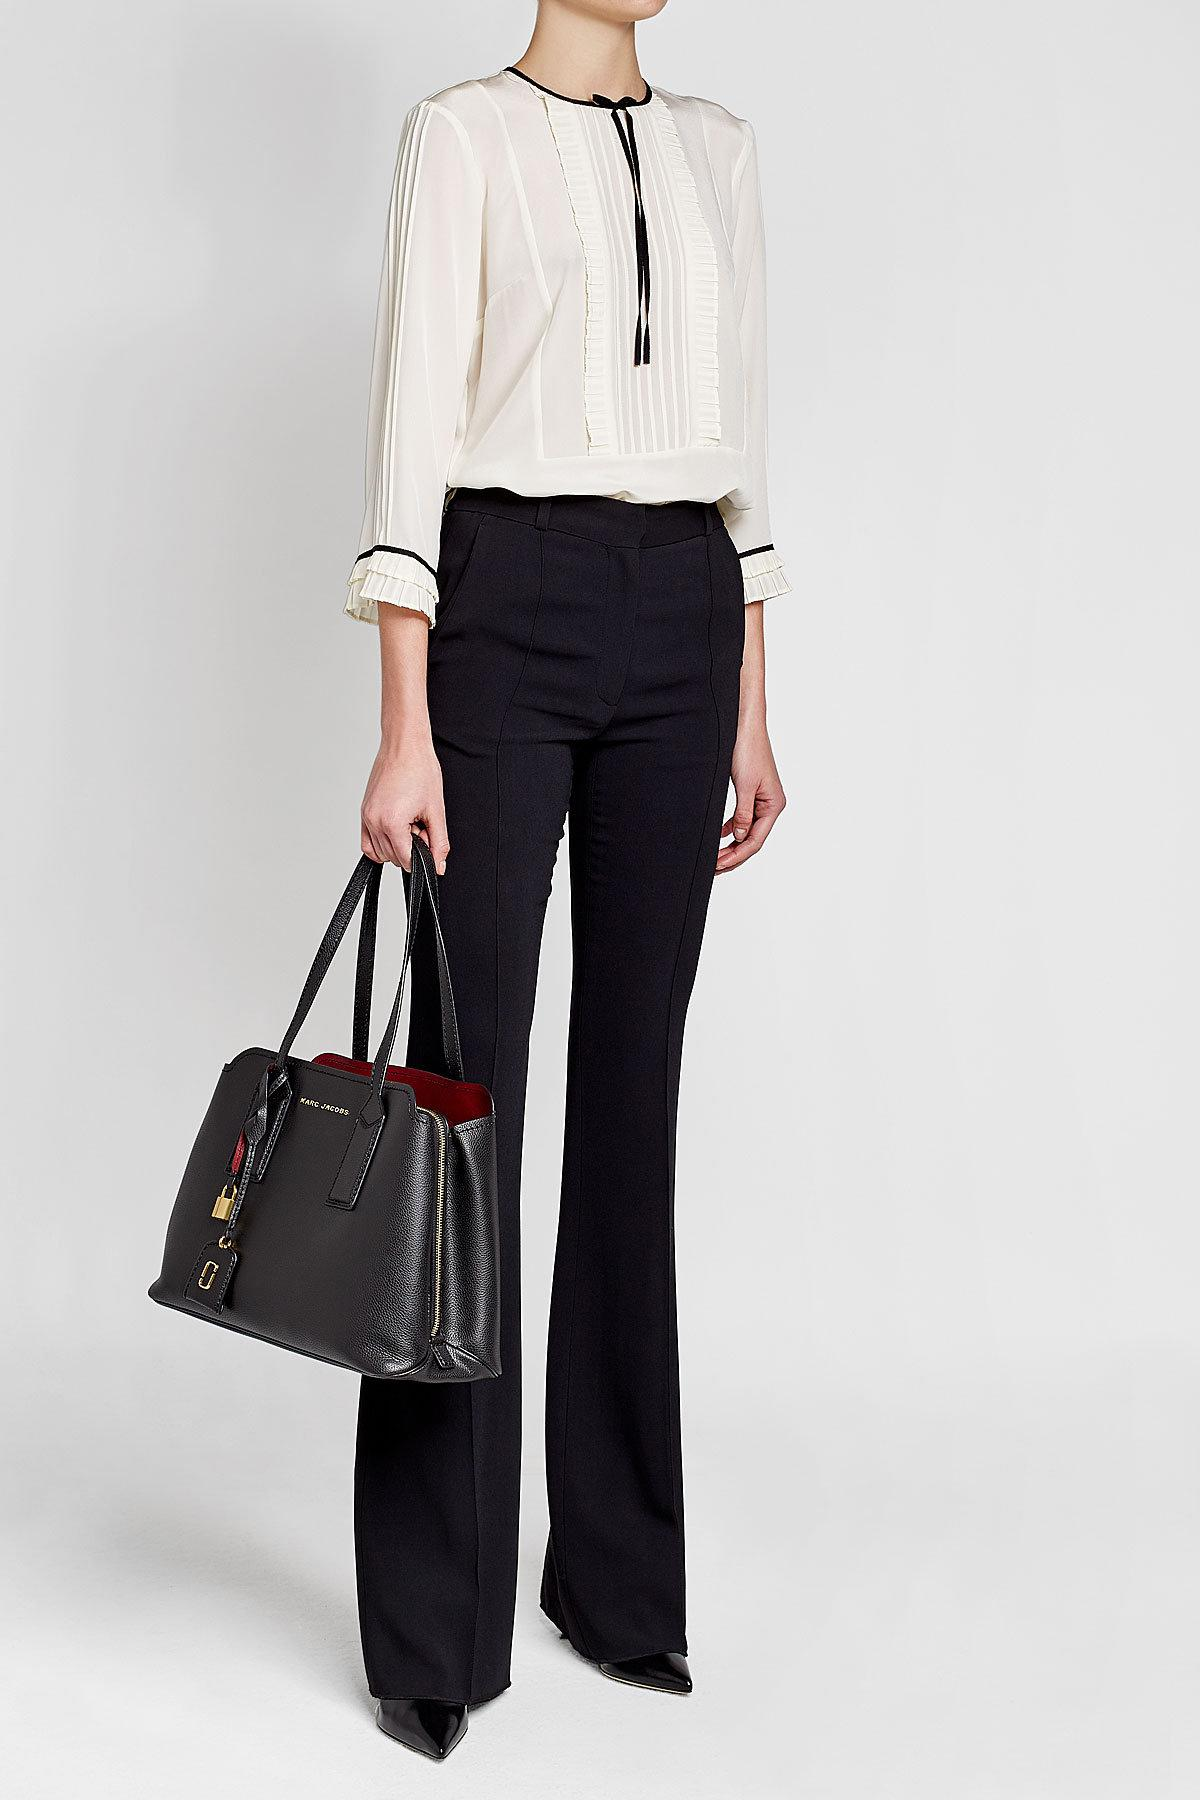 365b740d926c Lyst - Marc Jacobs The Editor Leather Tote in Black